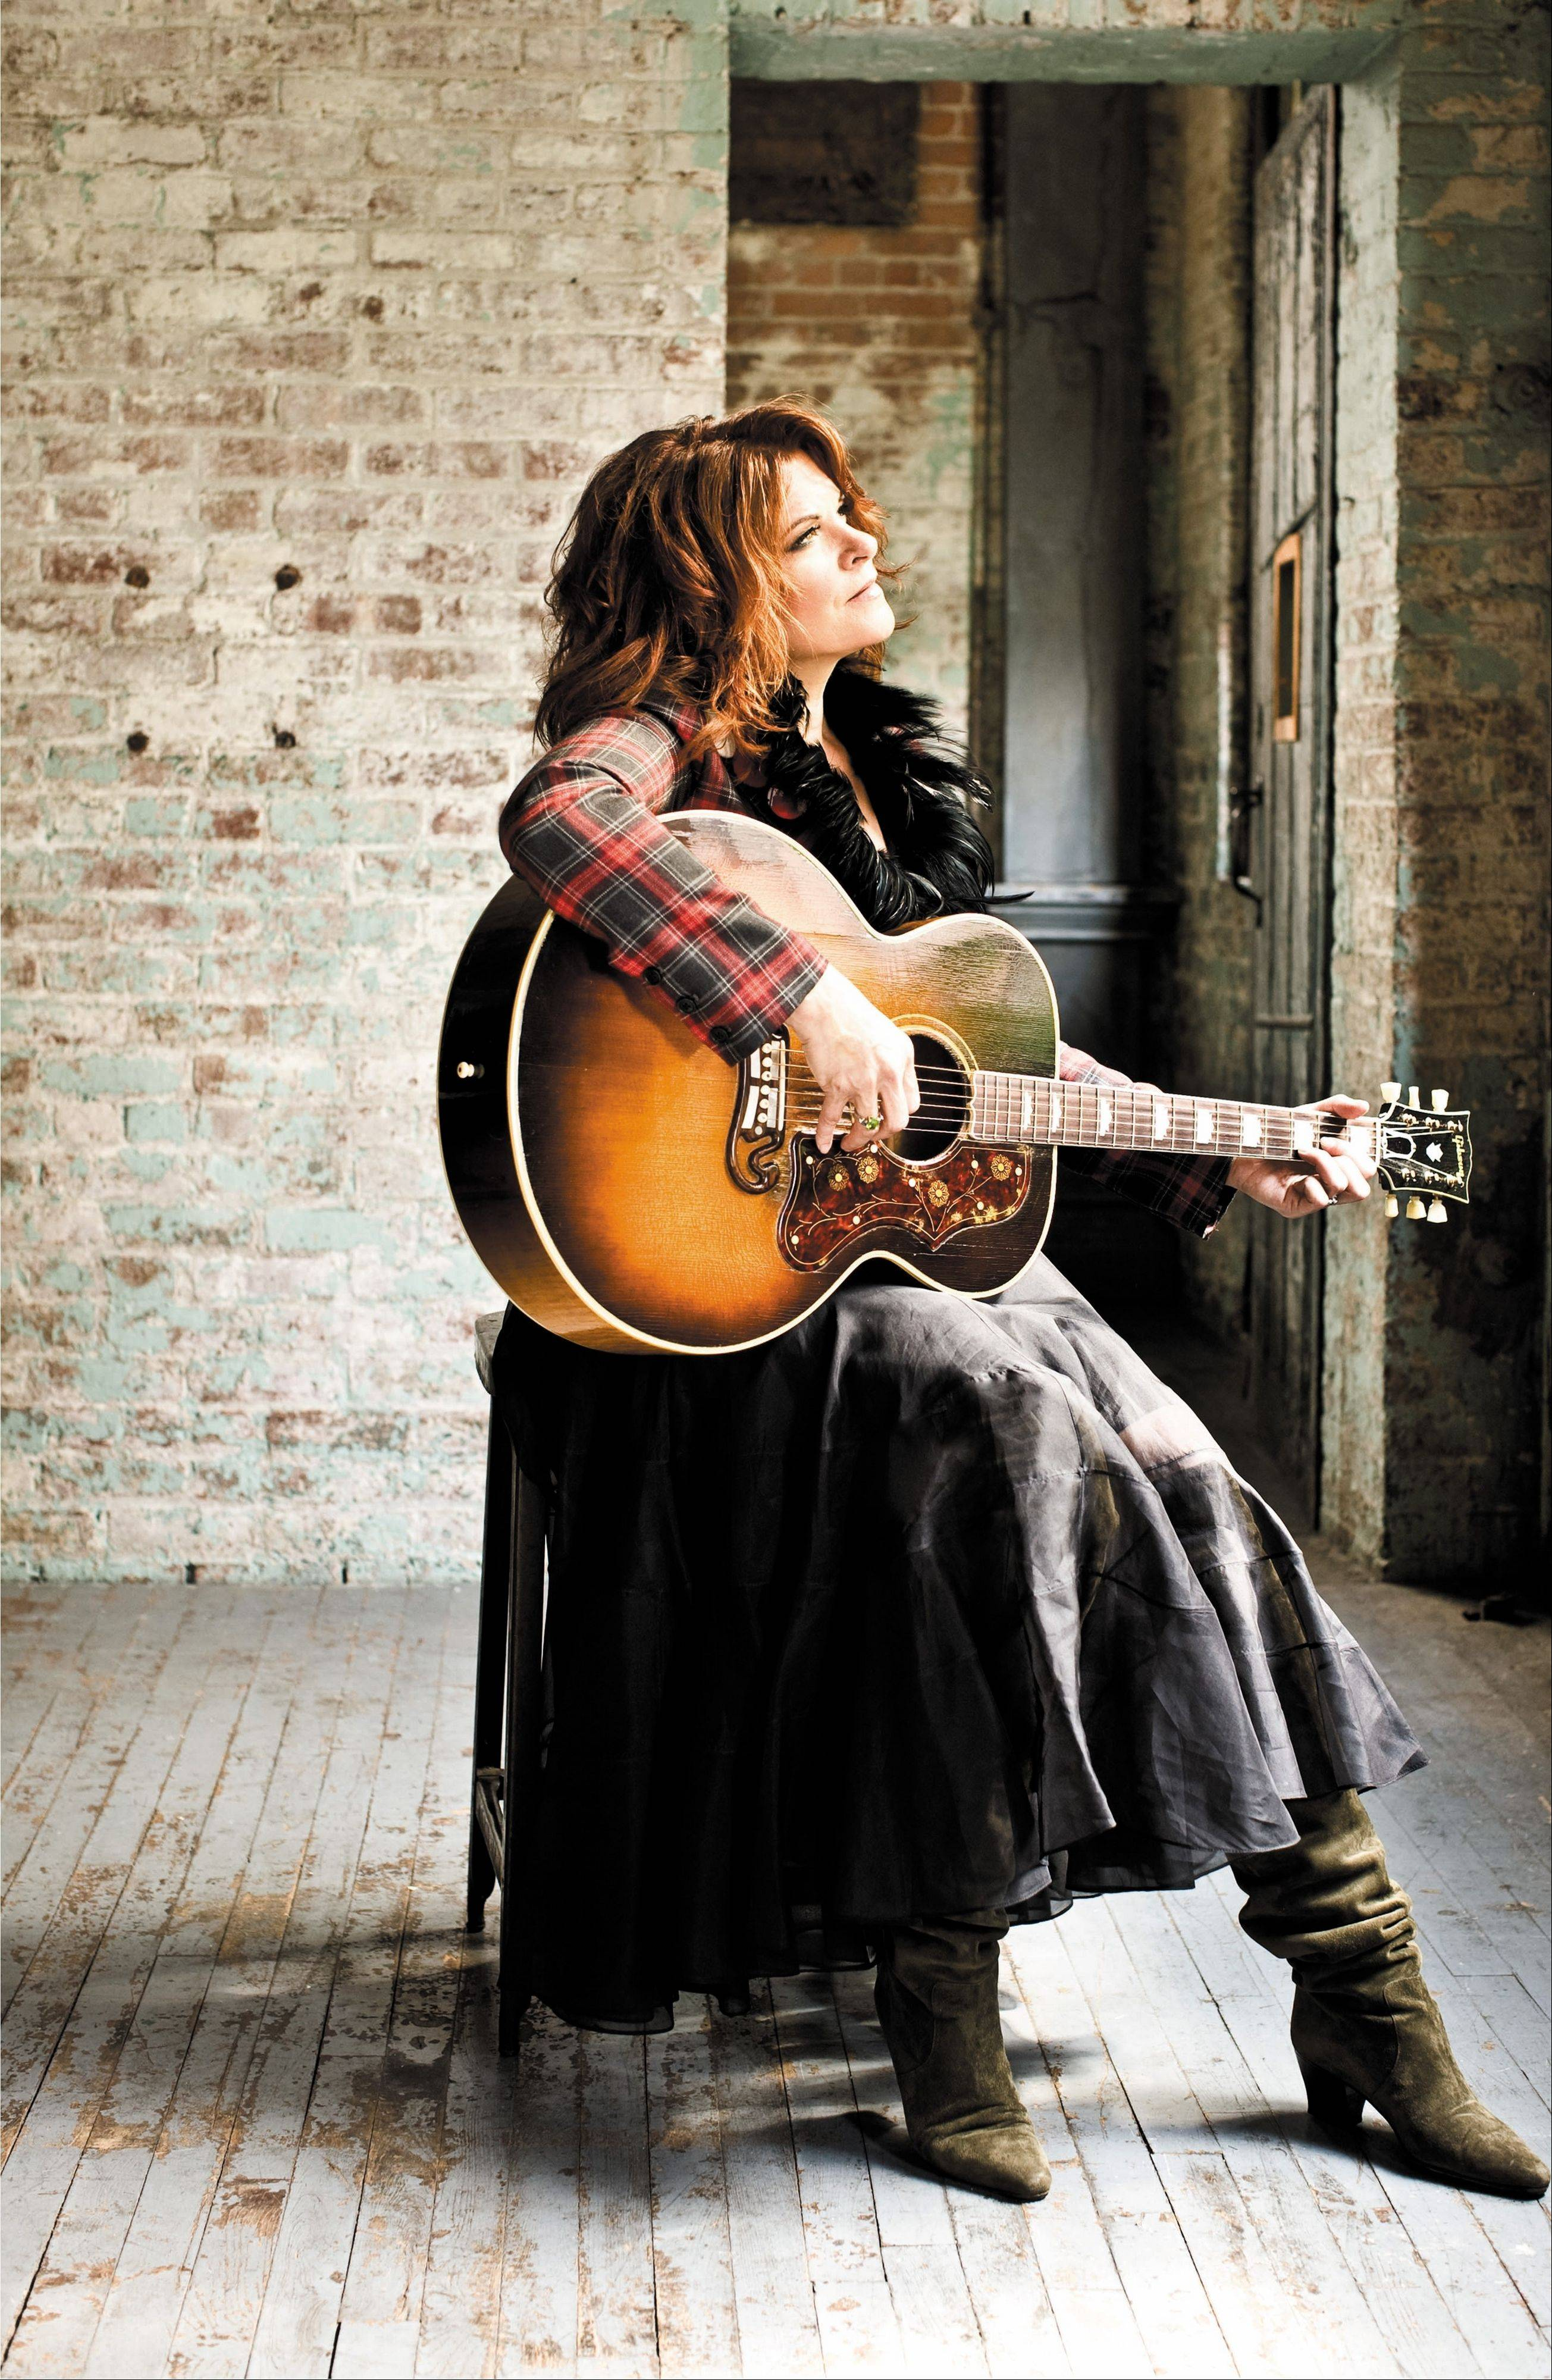 Rosanne Cash, daughter of country music legend Johnny Cash, will perform for one night only Saturday, Oct. 8, at Elgin Community College.